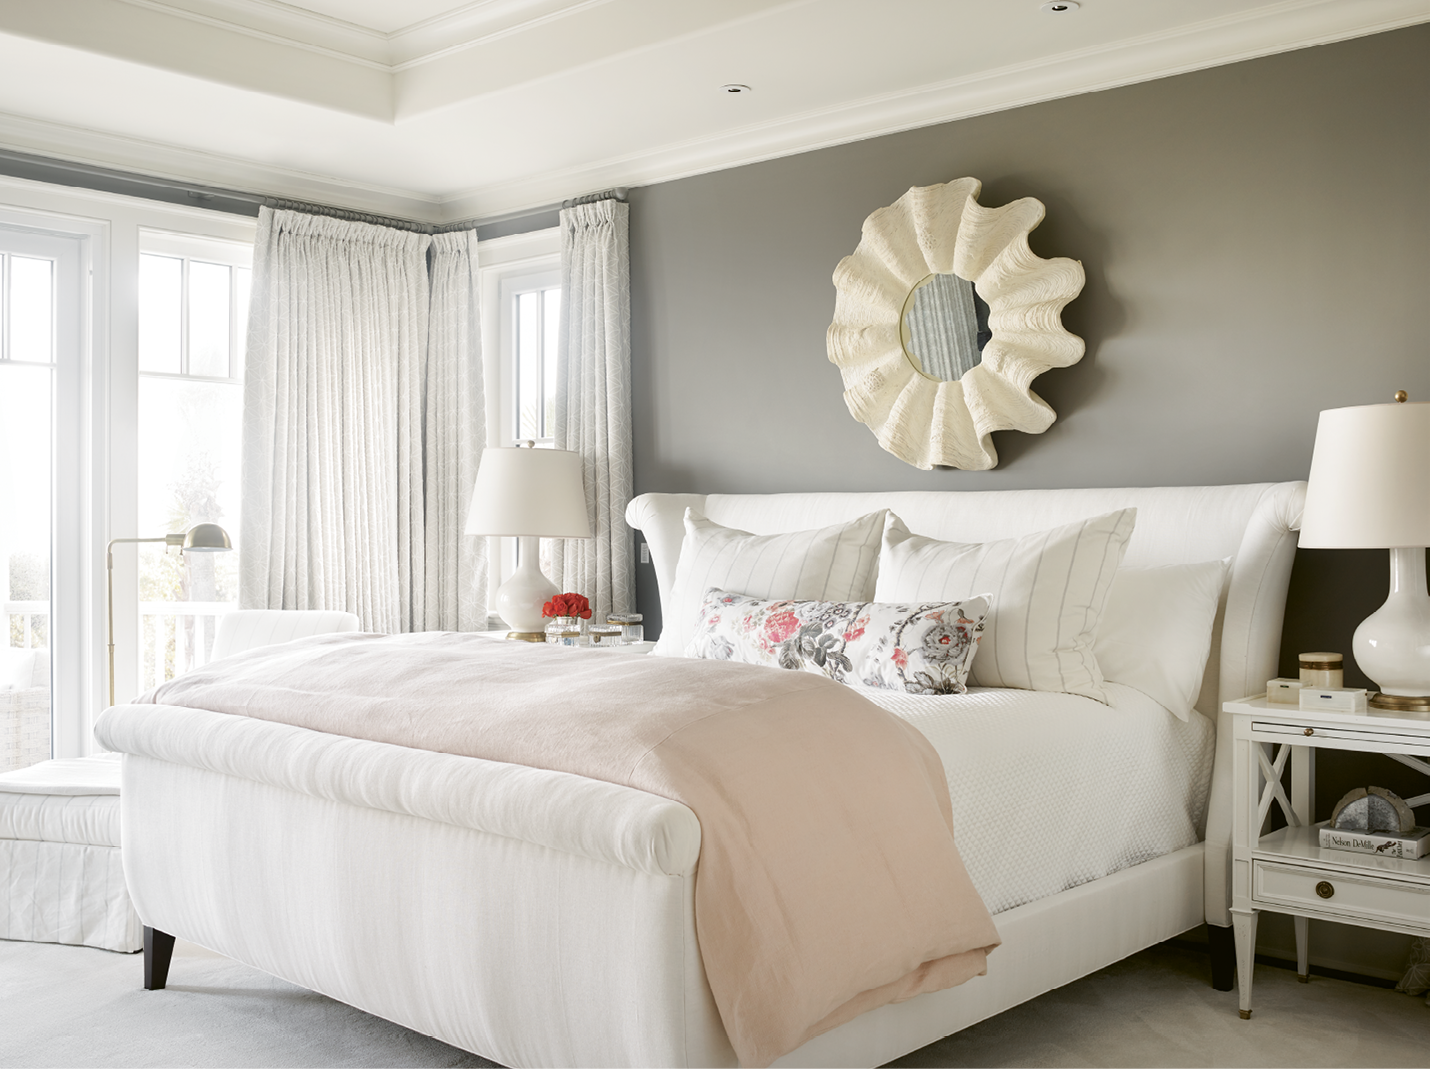 "In the master bedroom, walls covered in Farrow and Ball's ""Mole's Breath"" and drapes made with light grey Shumacher fabric ground the room's blush accents. The lamps are from Circa Lighting."